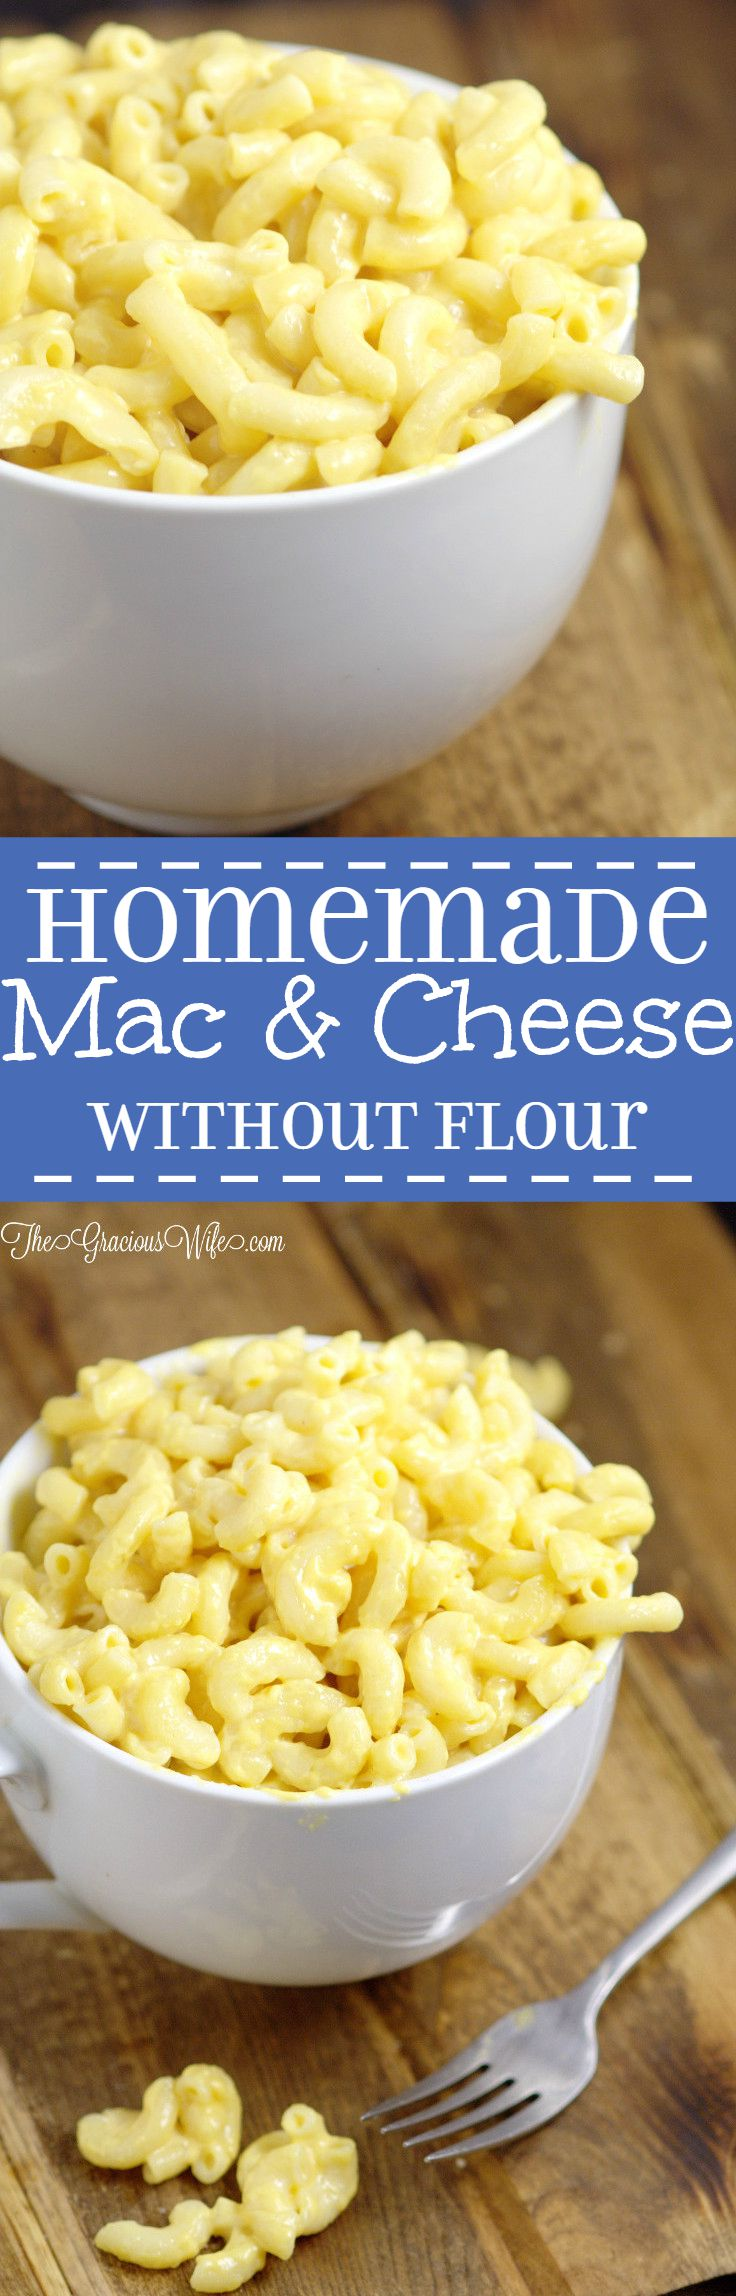 """Mac and Cheese without Flour! - An easy, creamy mac and cheese recipe that makes a great side dish recipe or dinner recipe idea, made without flour or """"cheese product""""! Just homemade macaroni with milk, butter, and REAL cheese"""